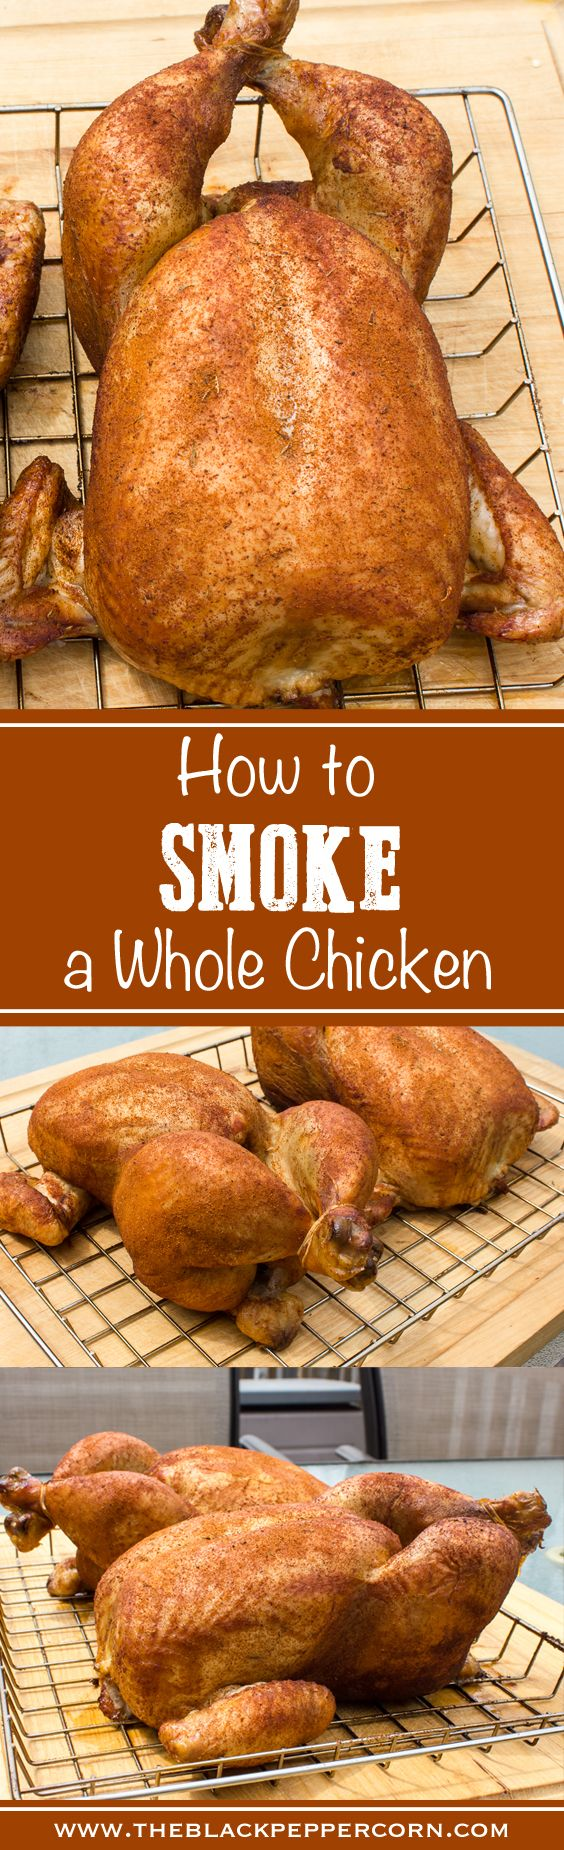 How To Smoke A Whole Chicken  Step By Step Instructions For Smoking A  Whole Chicken